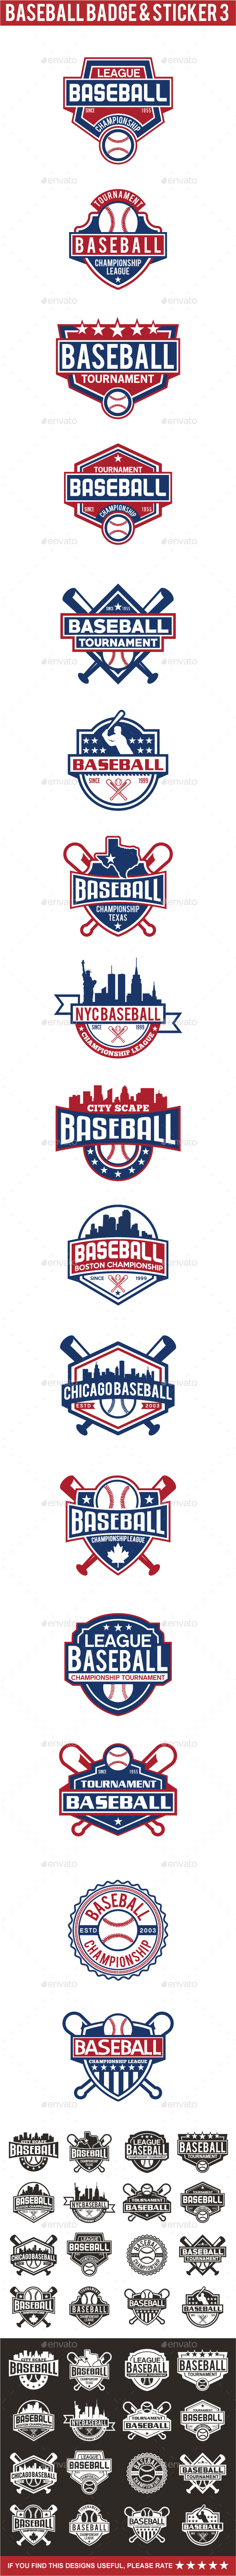 Baseball Badge & Stickers 3 - Badges & Stickers Web Elements